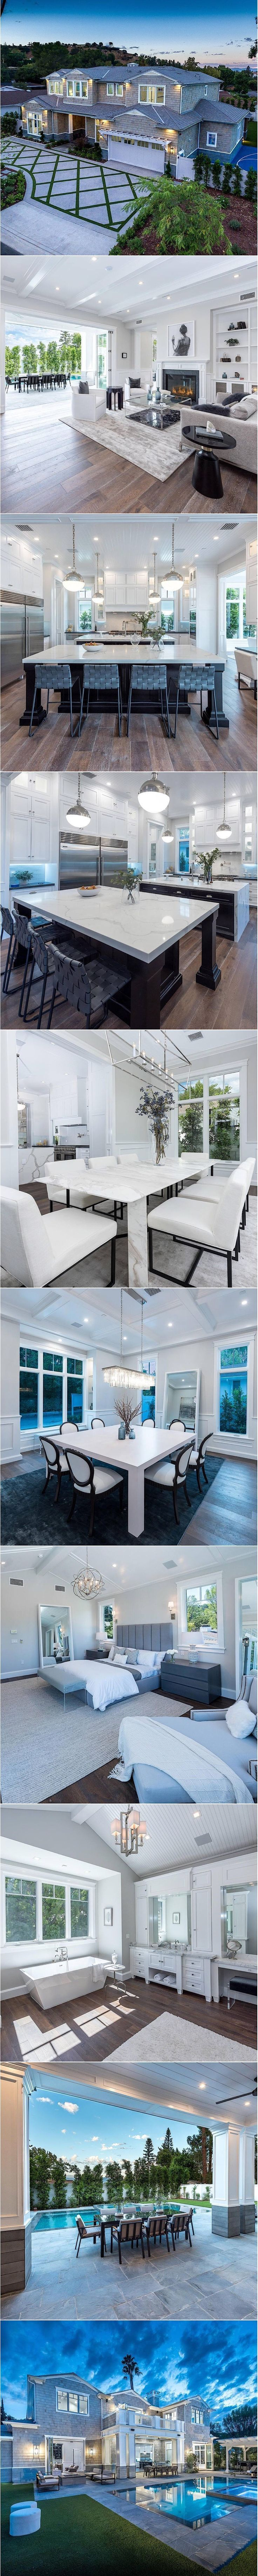 mastic home interiors. designed by premier home builders, amg capital, this new smart blends the best of traditional styling w/21st century tech. mastic interiors